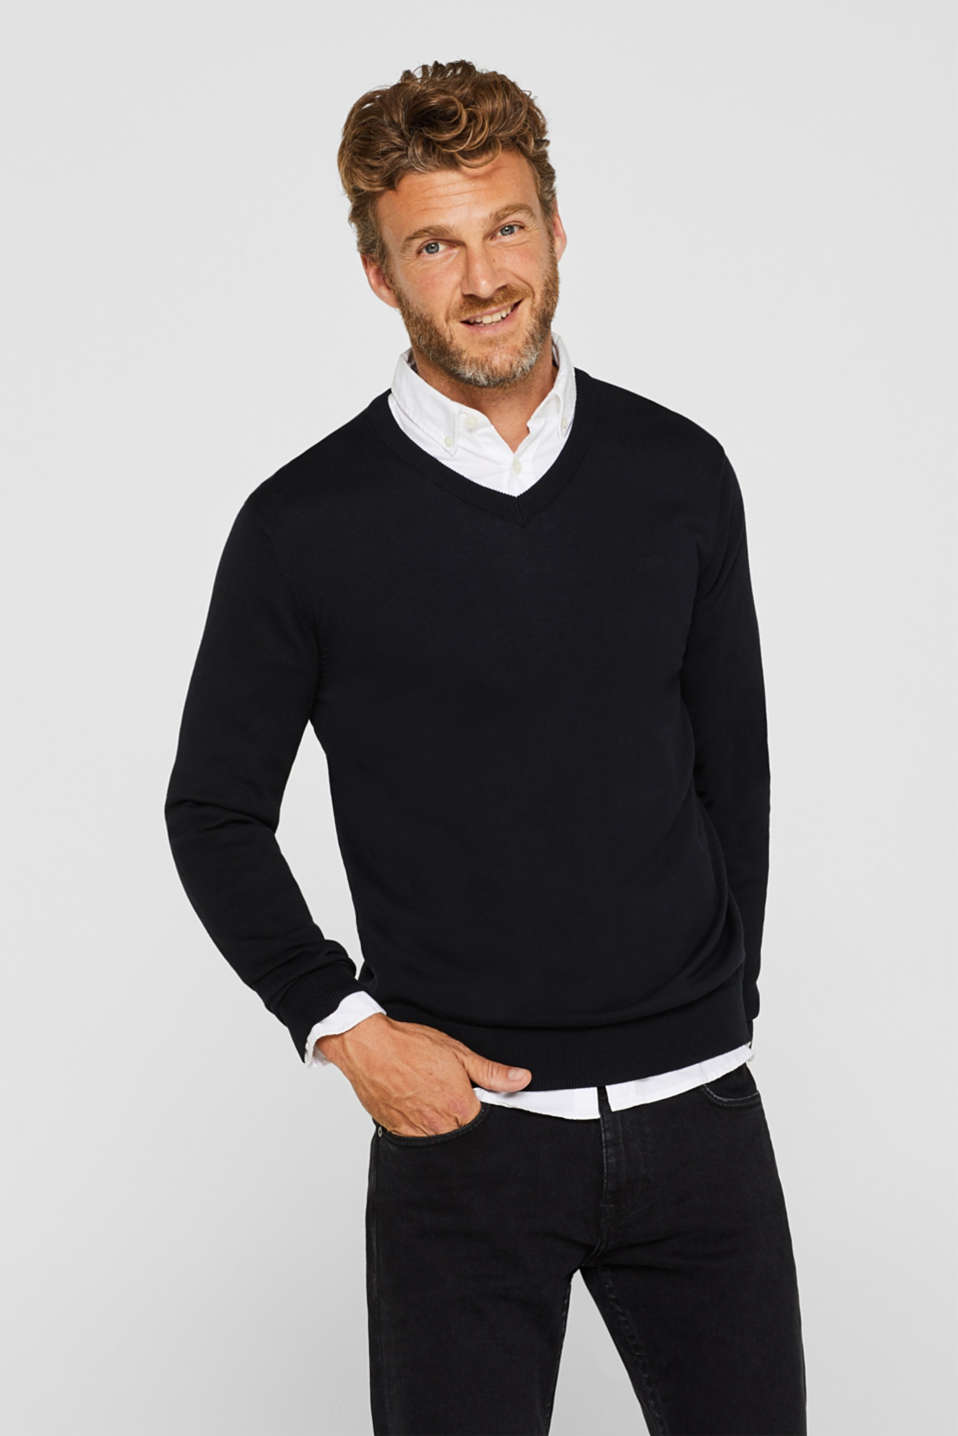 Jumper with a V-neck, 100% cotton